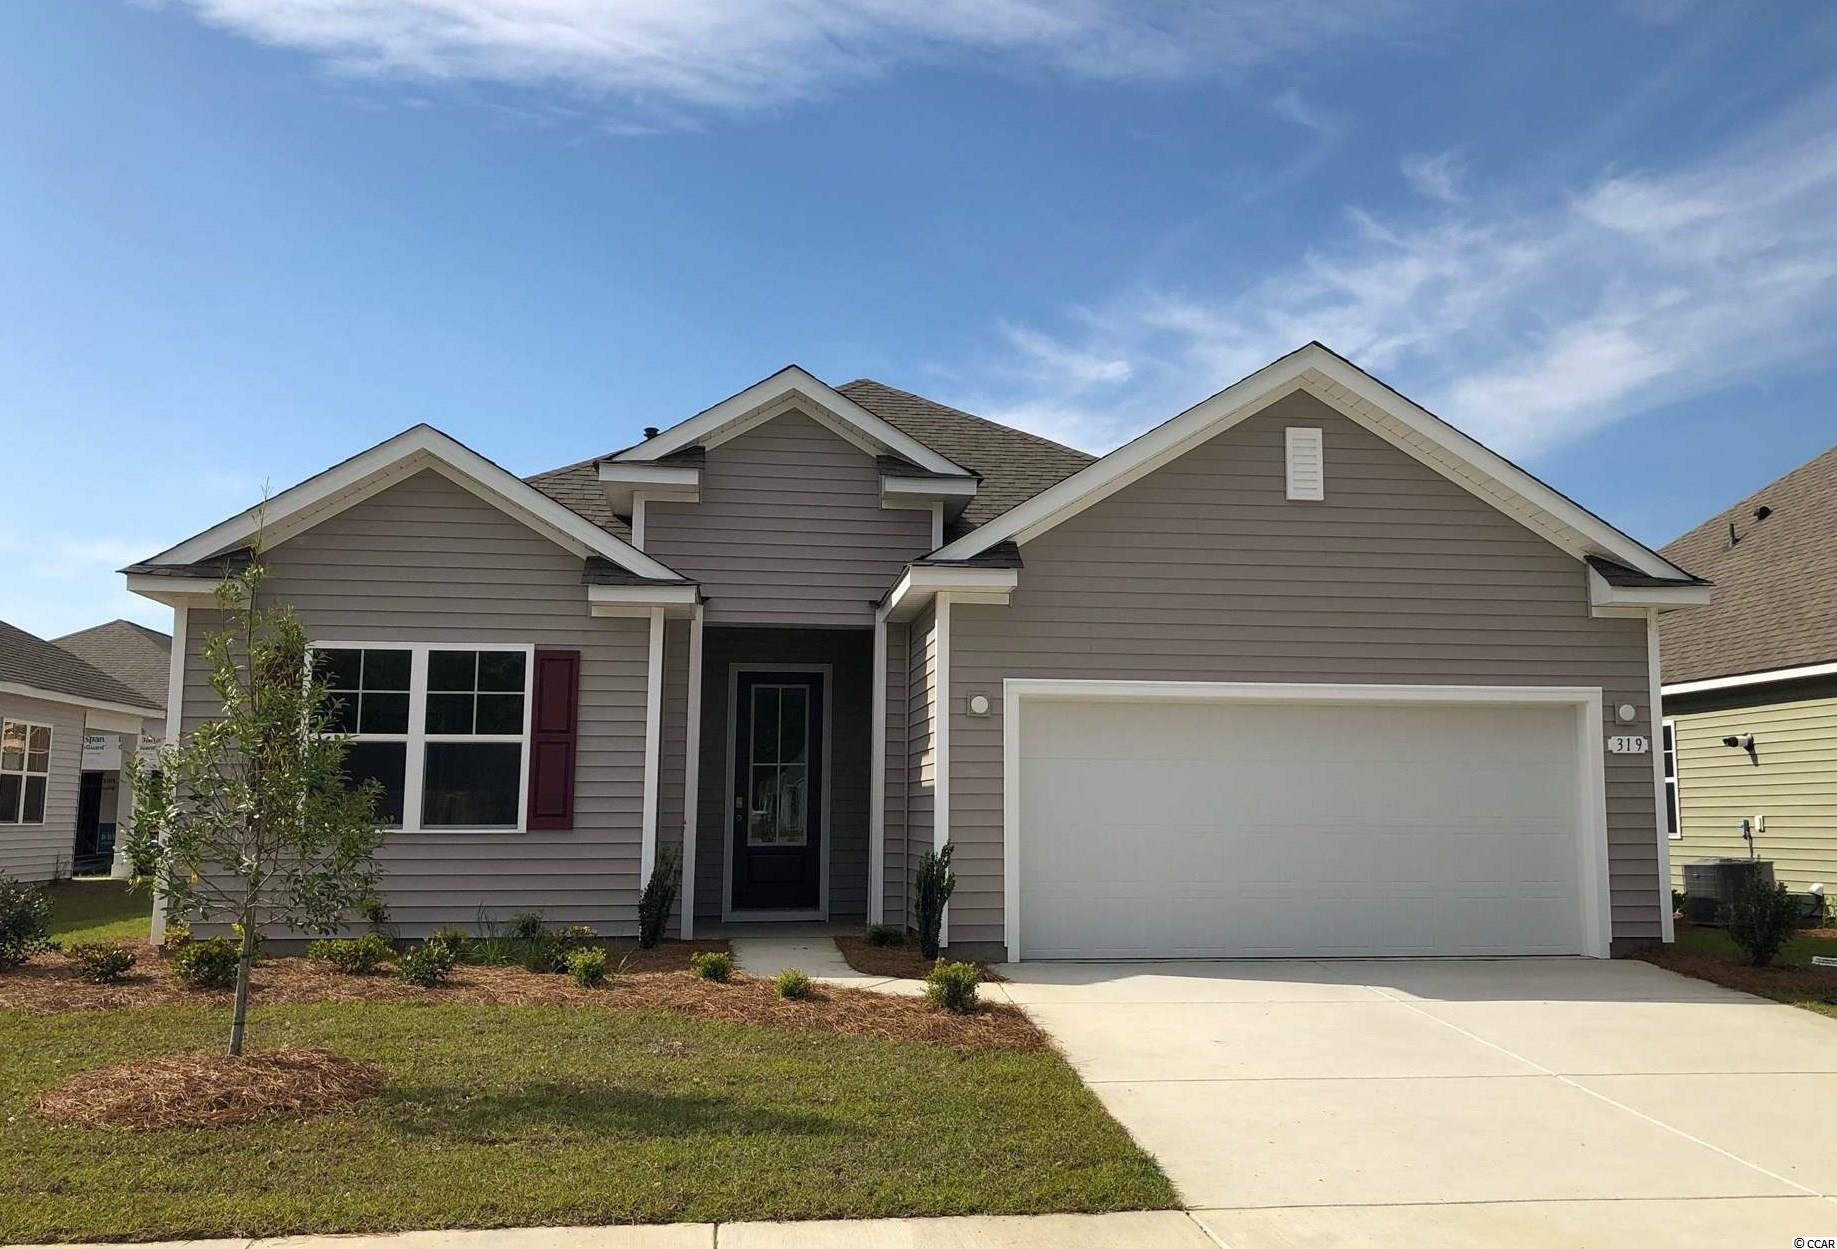 New phase now selling! Hidden Brooke is a beautiful community with an amenity that includes a pool with large deck area, clubhouse, exercise room, and fire pit overlooking the water. Minutes away from Highway 31 which provides quick and easy access to all of the Grand Strand's offerings: dining, entertainment, shopping, and golf! Tranquil setting just a short drive to the beach. This popular Eaton floor plan is a great open concept home with a show stopper kitchen- perfect for family living and entertaining! White painted cabinetry, granite countertops, stainless Whirlpool appliances including a gas range, 9 ft. ceilings, and much more! Luxury primary bedroom suite with tray ceiling and en suite bath featuring a large double vanity, 5 ft. shower, and two linen closets! This home will also feature laminate wood flooring throughout the main living areas with tile in the bathrooms and laundry room. It gets better- this is America's Smart Home!  Control the thermostat, front door light and lock, and video doorbell from your smartphone or with voice commands to Alexa.  *Photos are of a similar Eaton home.  (Home and community information, including pricing, included features, terms, availability and amenities, are subject to change prior to sale at any time without notice or obligation. Square footages are approximate. Pictures, photographs, colors, features, and sizes are for illustration purposes only and will vary from the homes as built. Equal housing opportunity builder.)